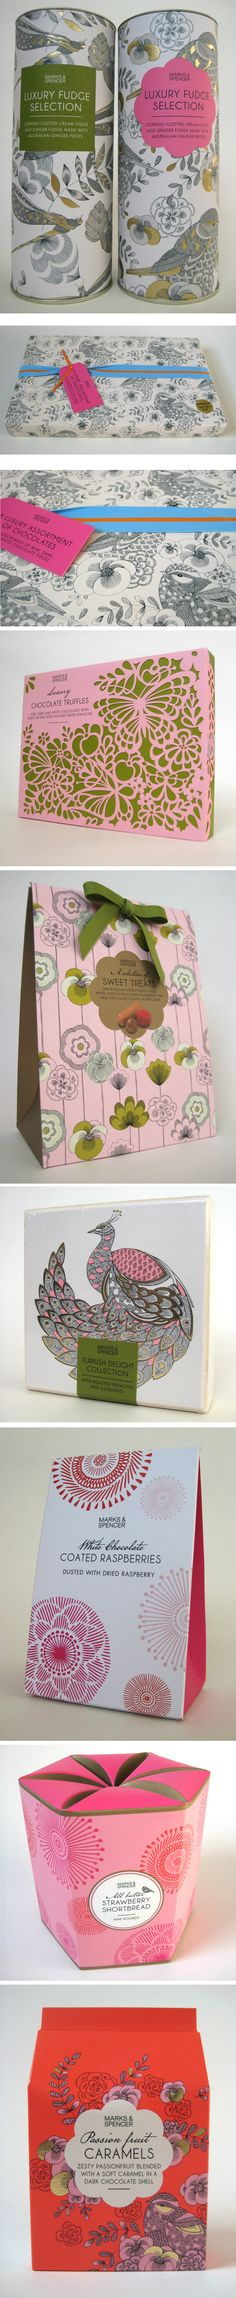 Marks & Spencer packaging by illustrator Millie Marotta. Love the style and use of gold foil for added luxury.